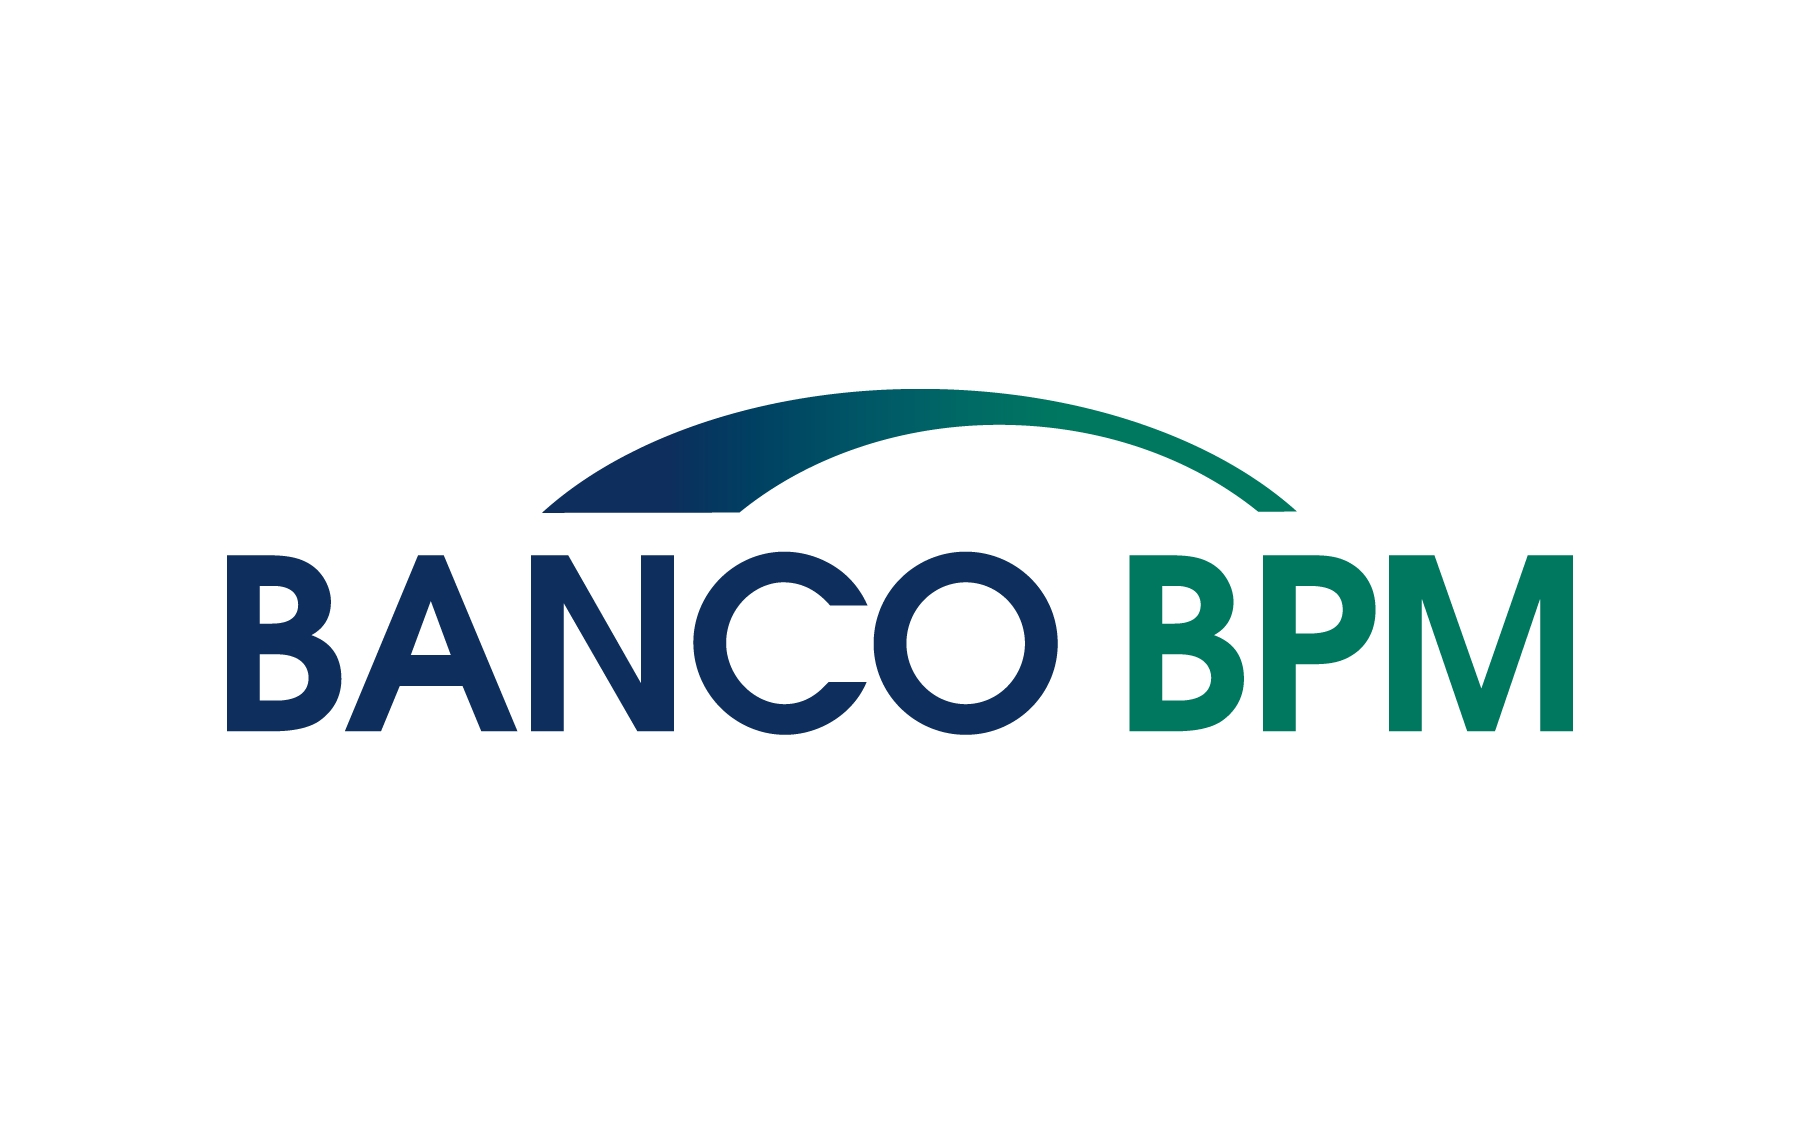 Banco Bpm HiRes